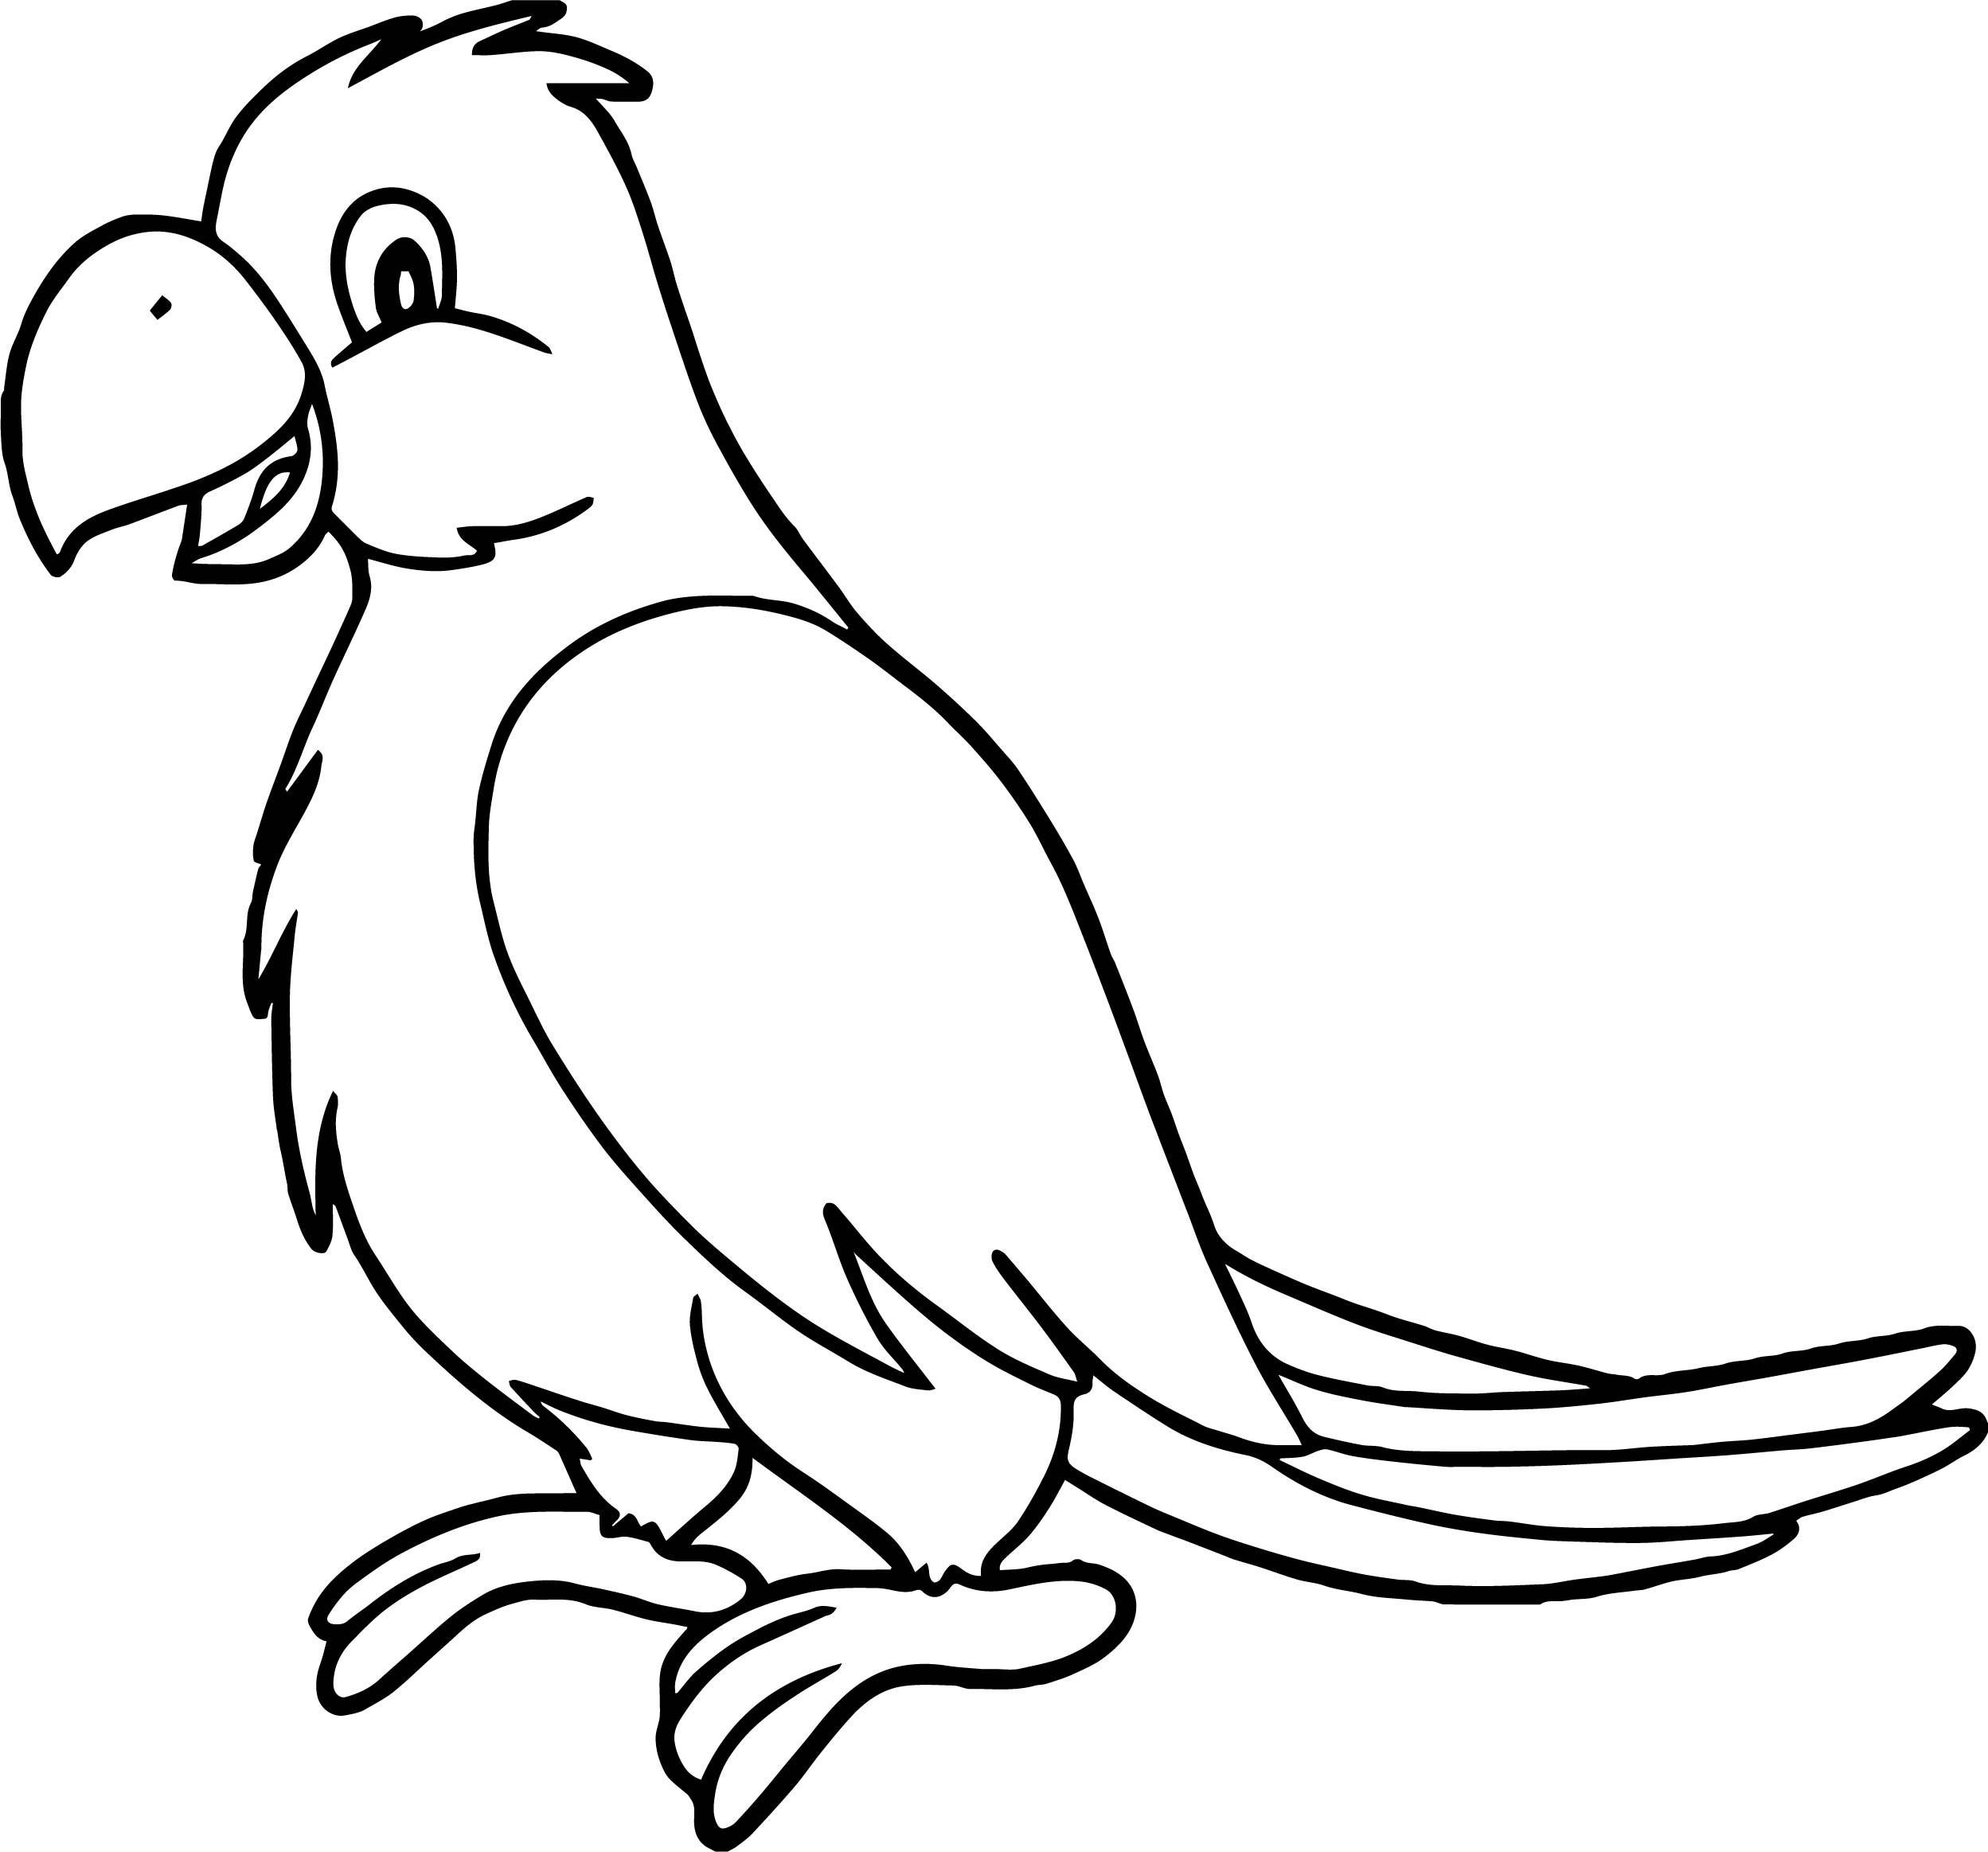 2497x2326 parrot drawing for kids and parrot cartoon drawing parrot drawing